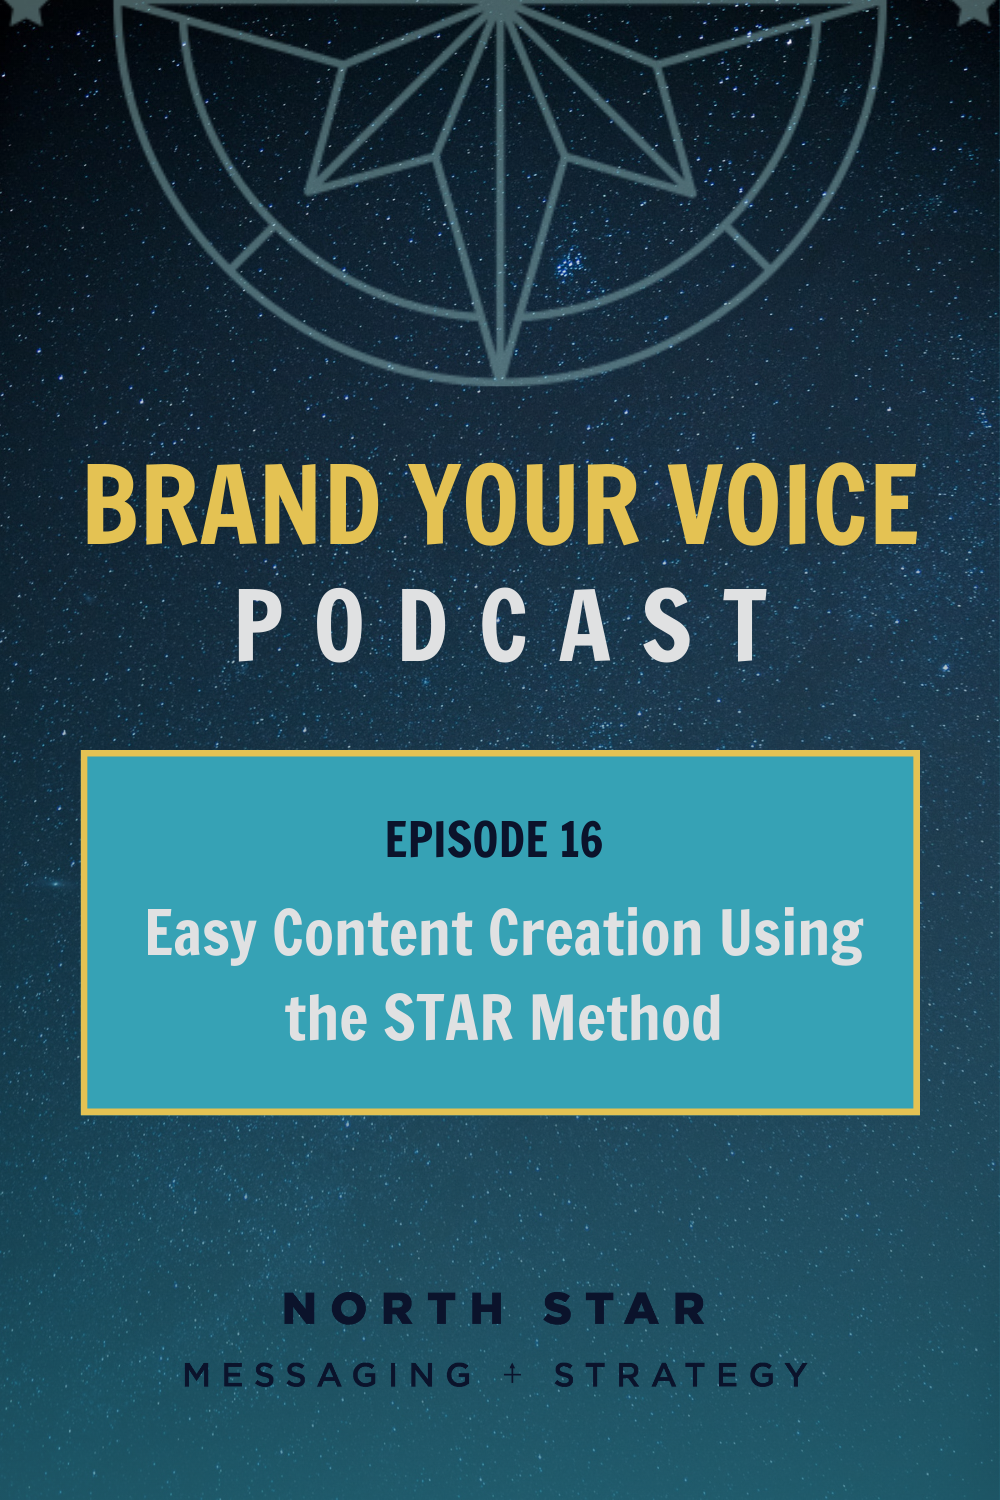 EPISODE 16: Easy Content Creation Using the STAR Method